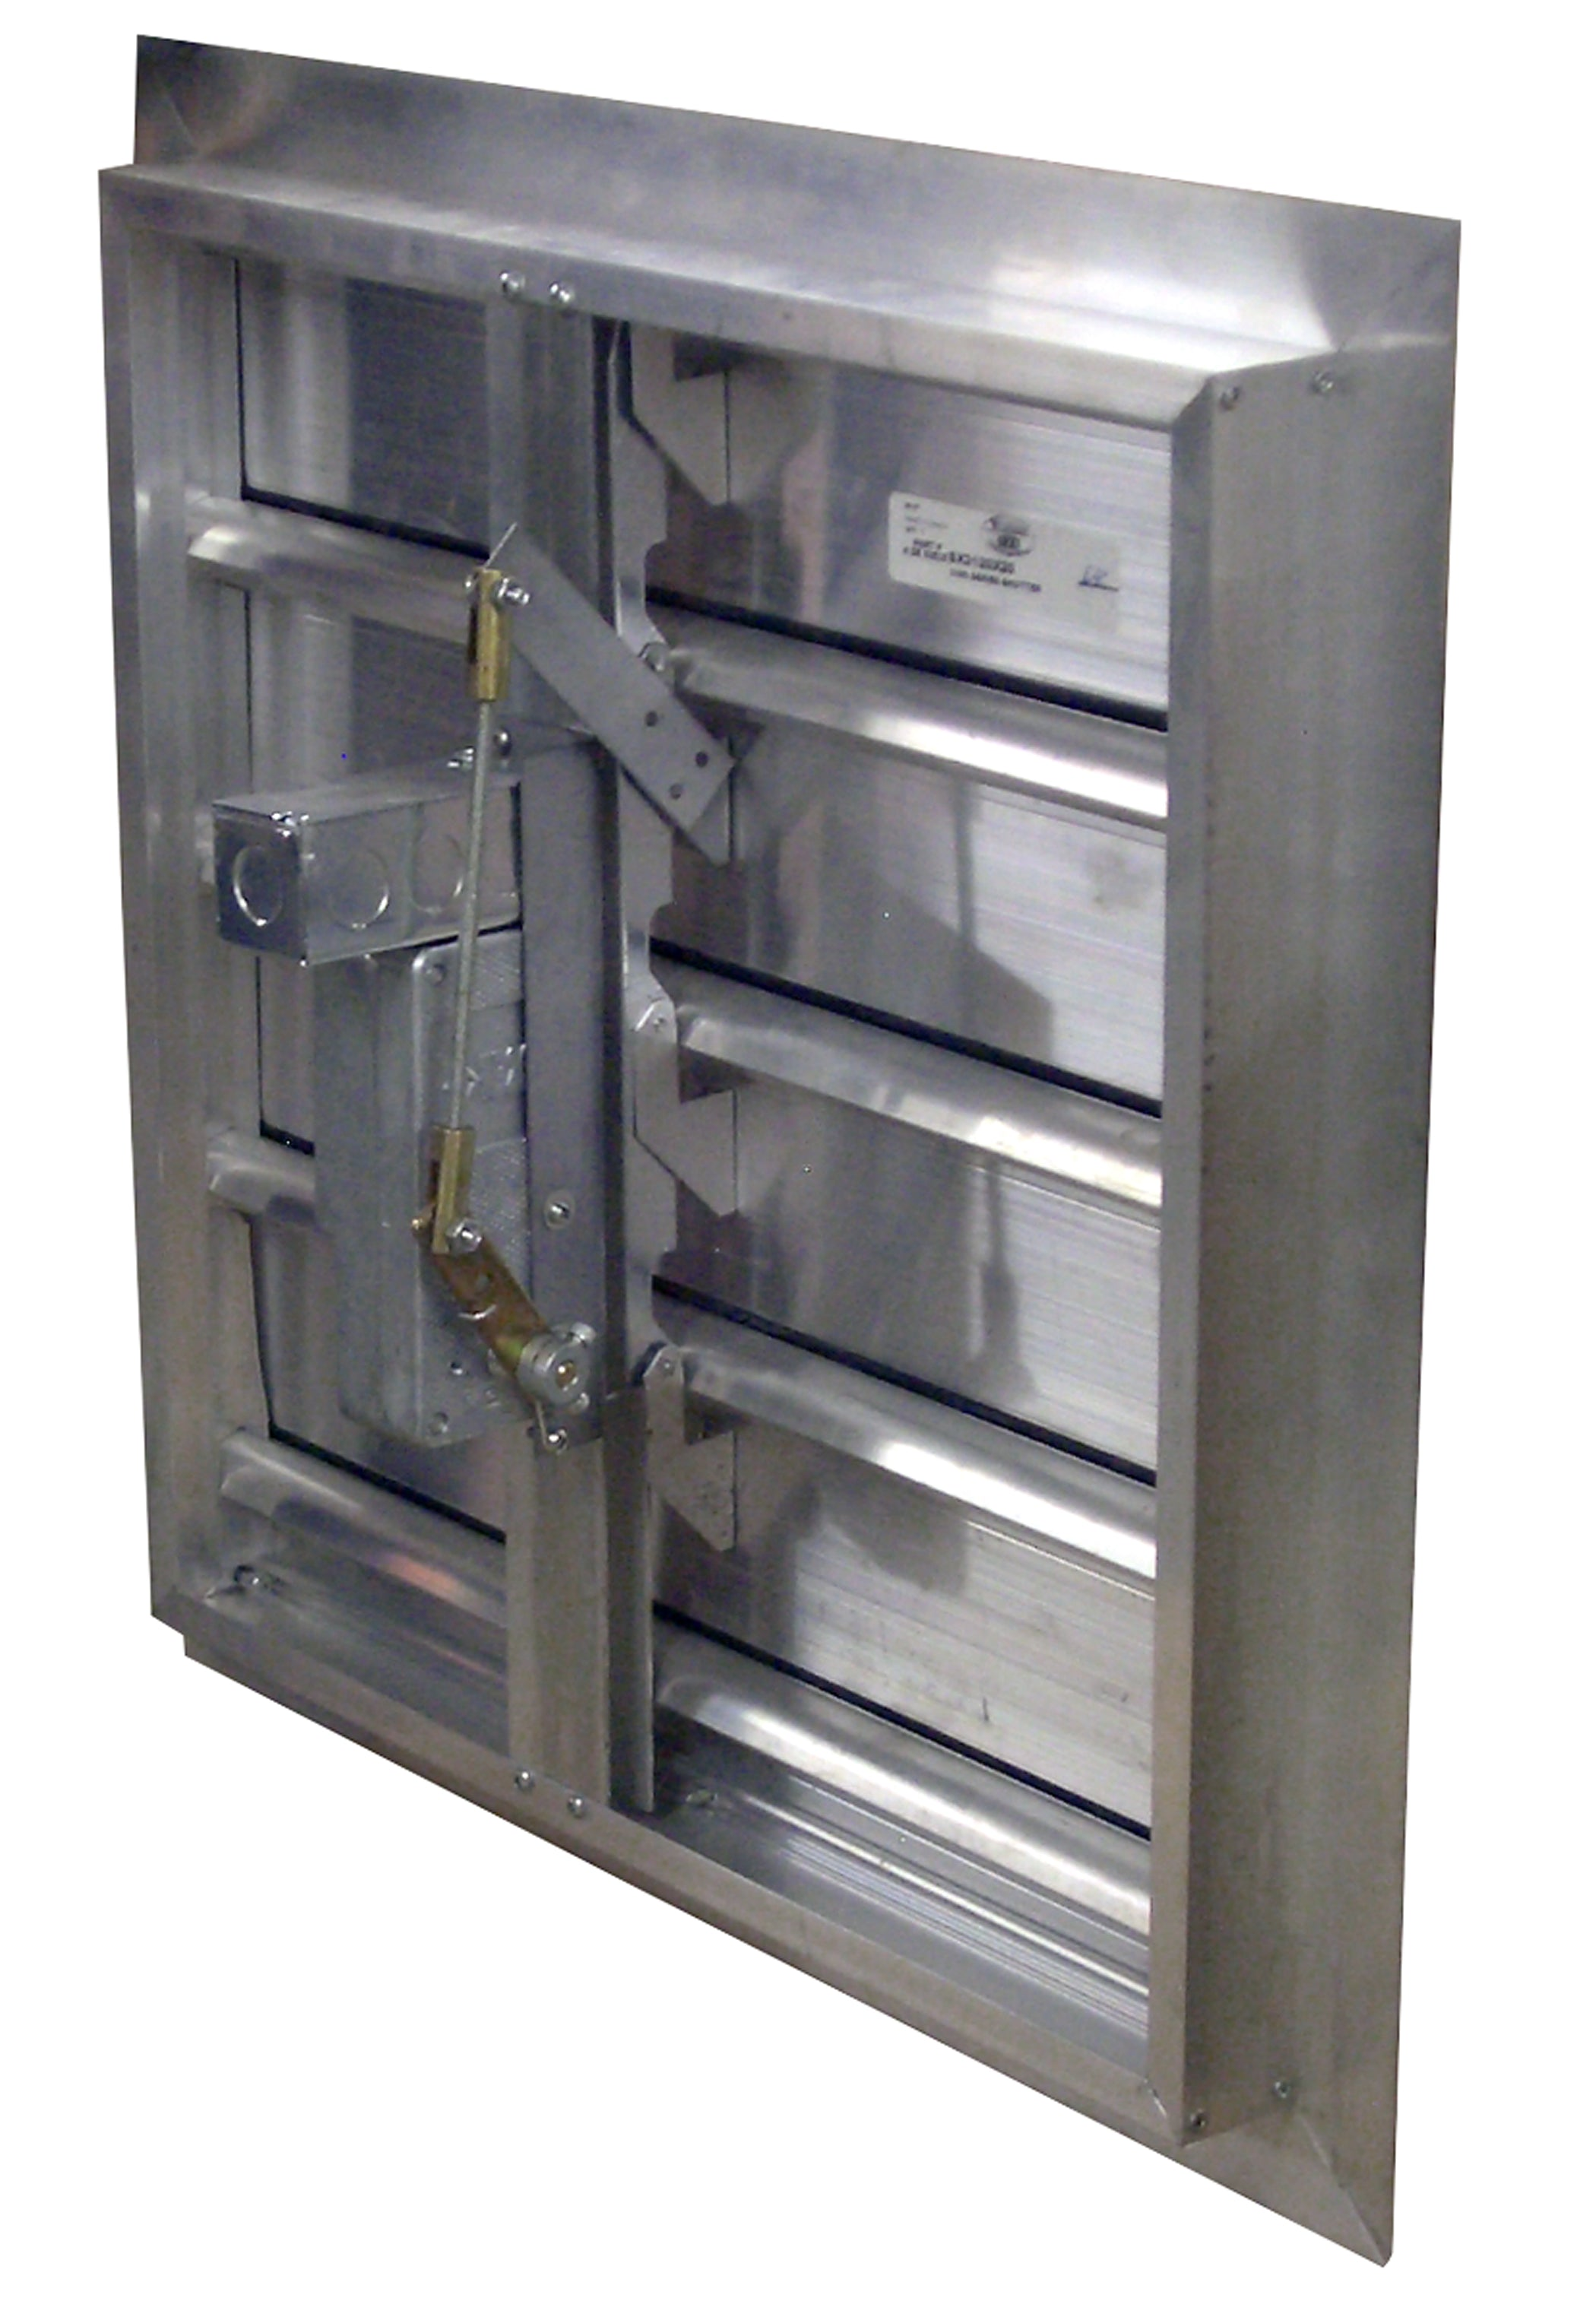 dampers-shutters-and-weather-hoods-heavy-duty-motorized-dampers-shutters.jpg